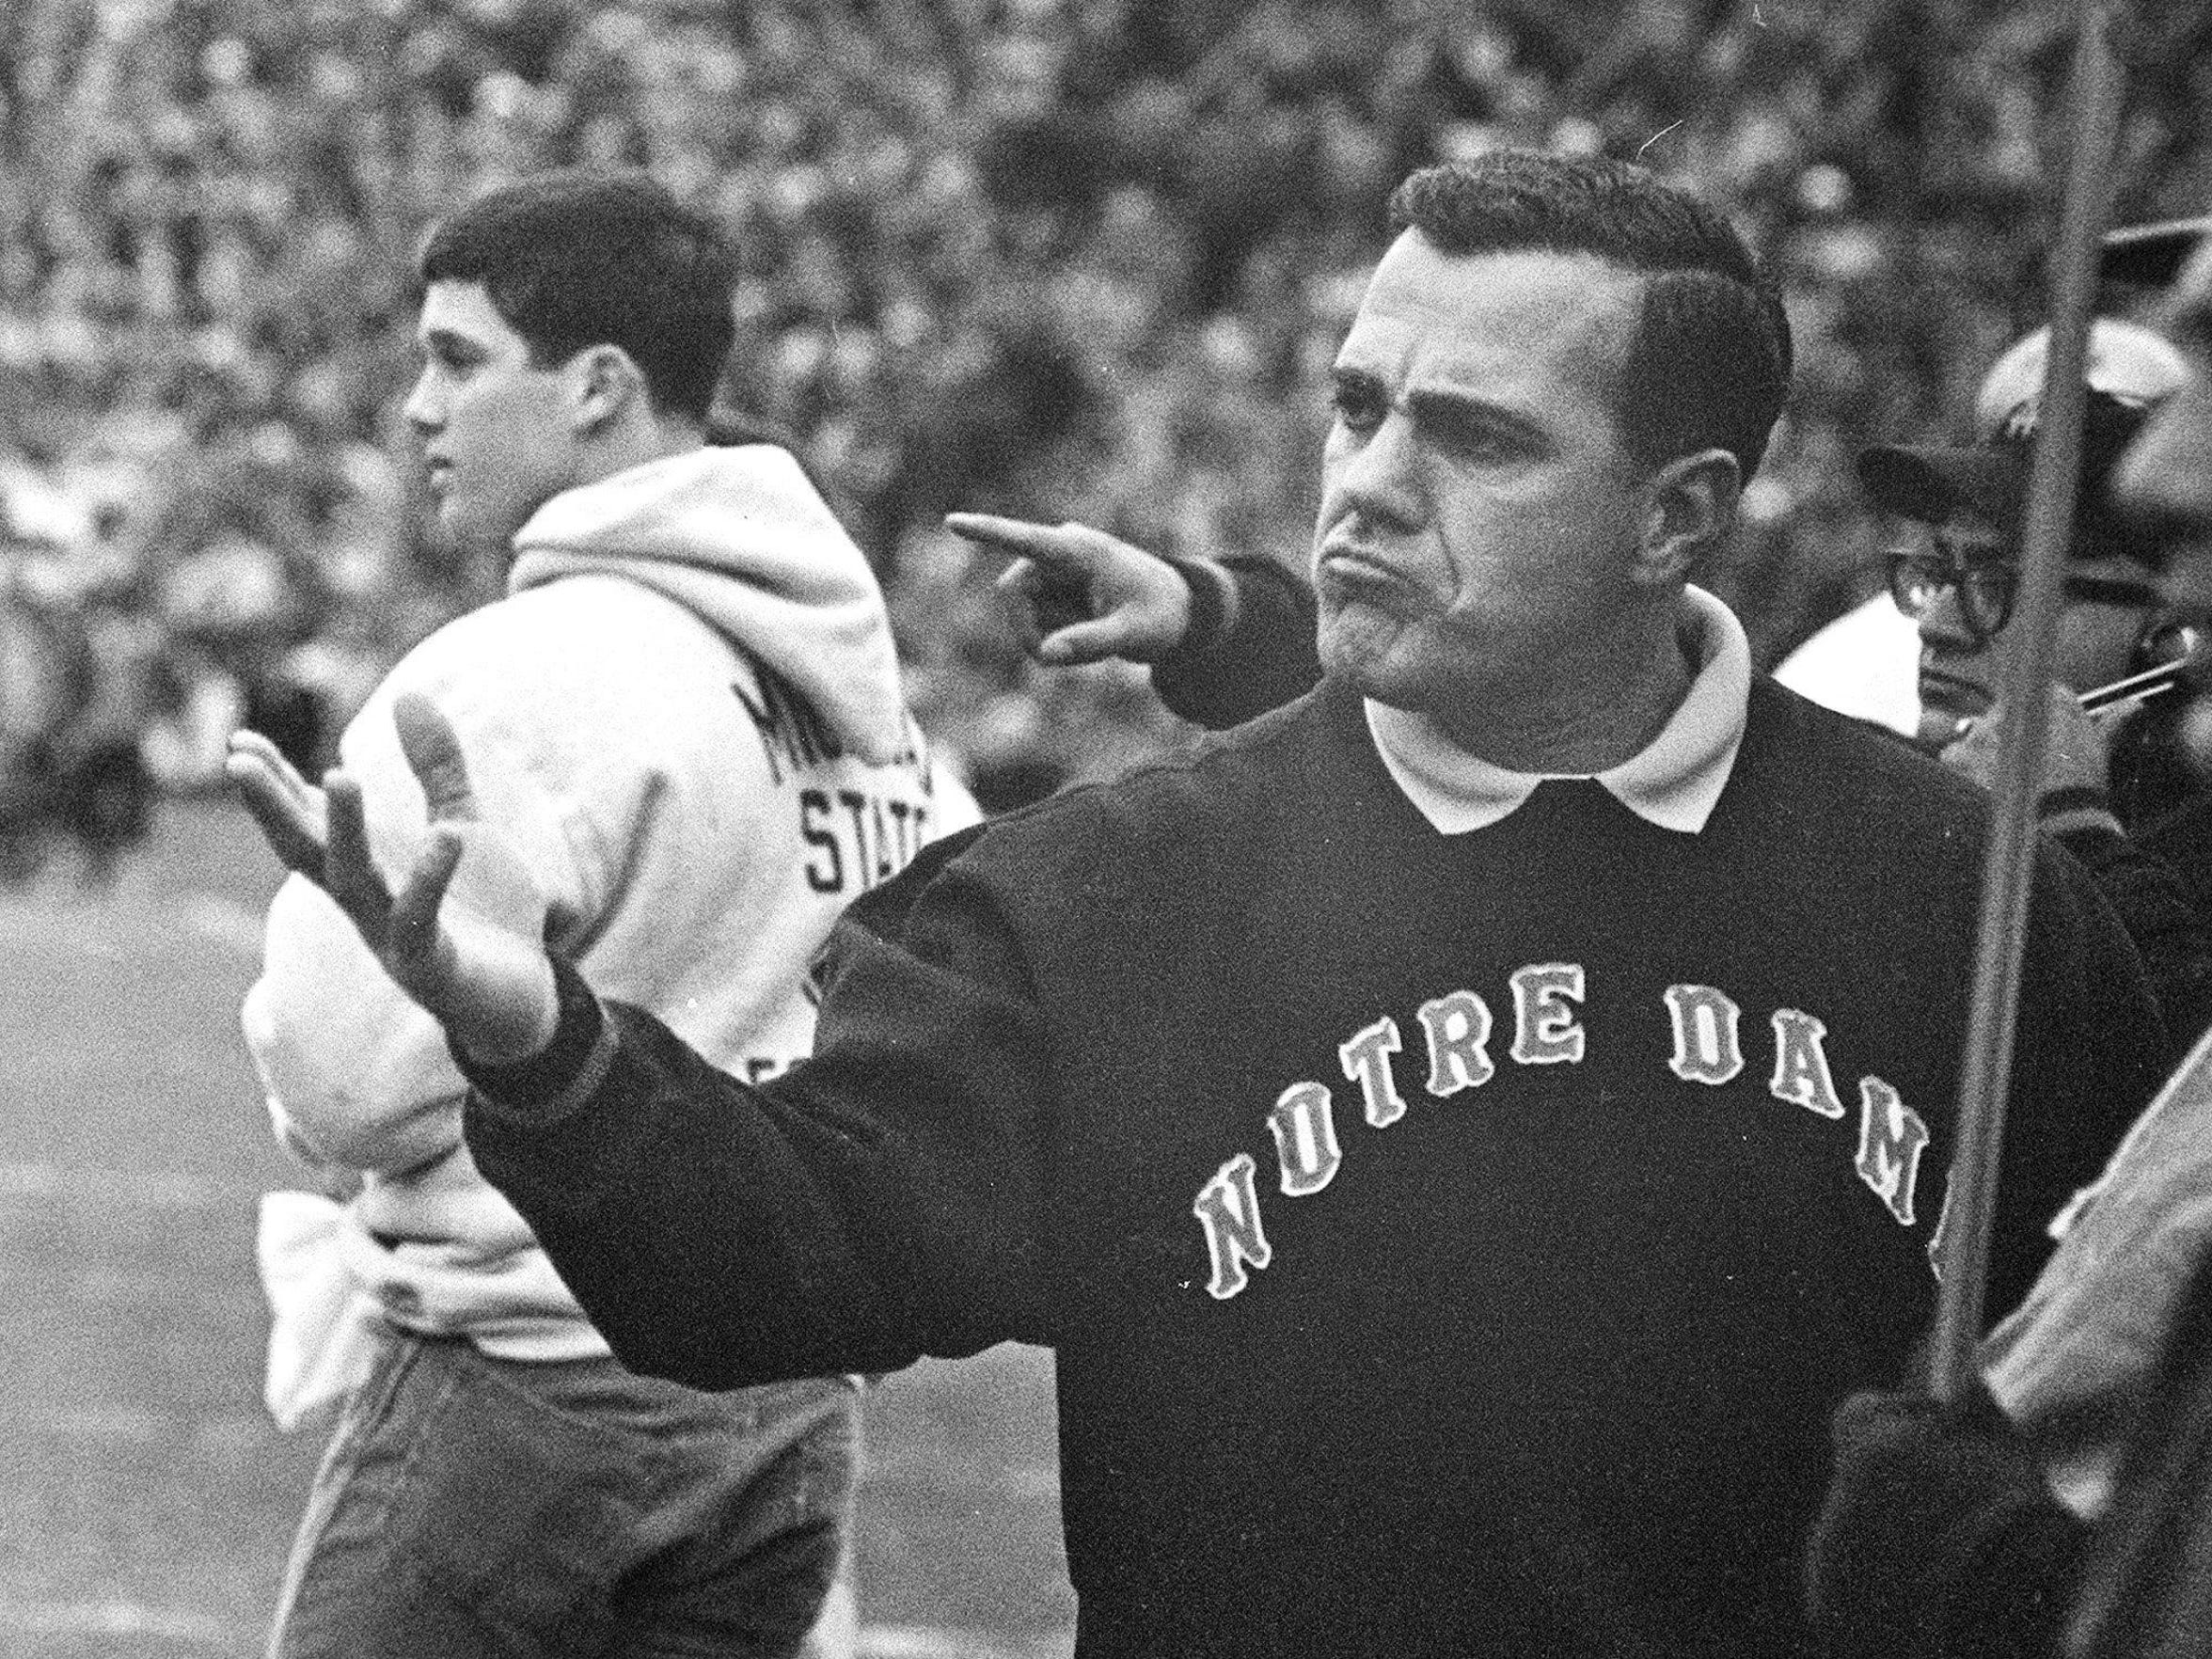 Ara Parseghian defended running the ball in the game's